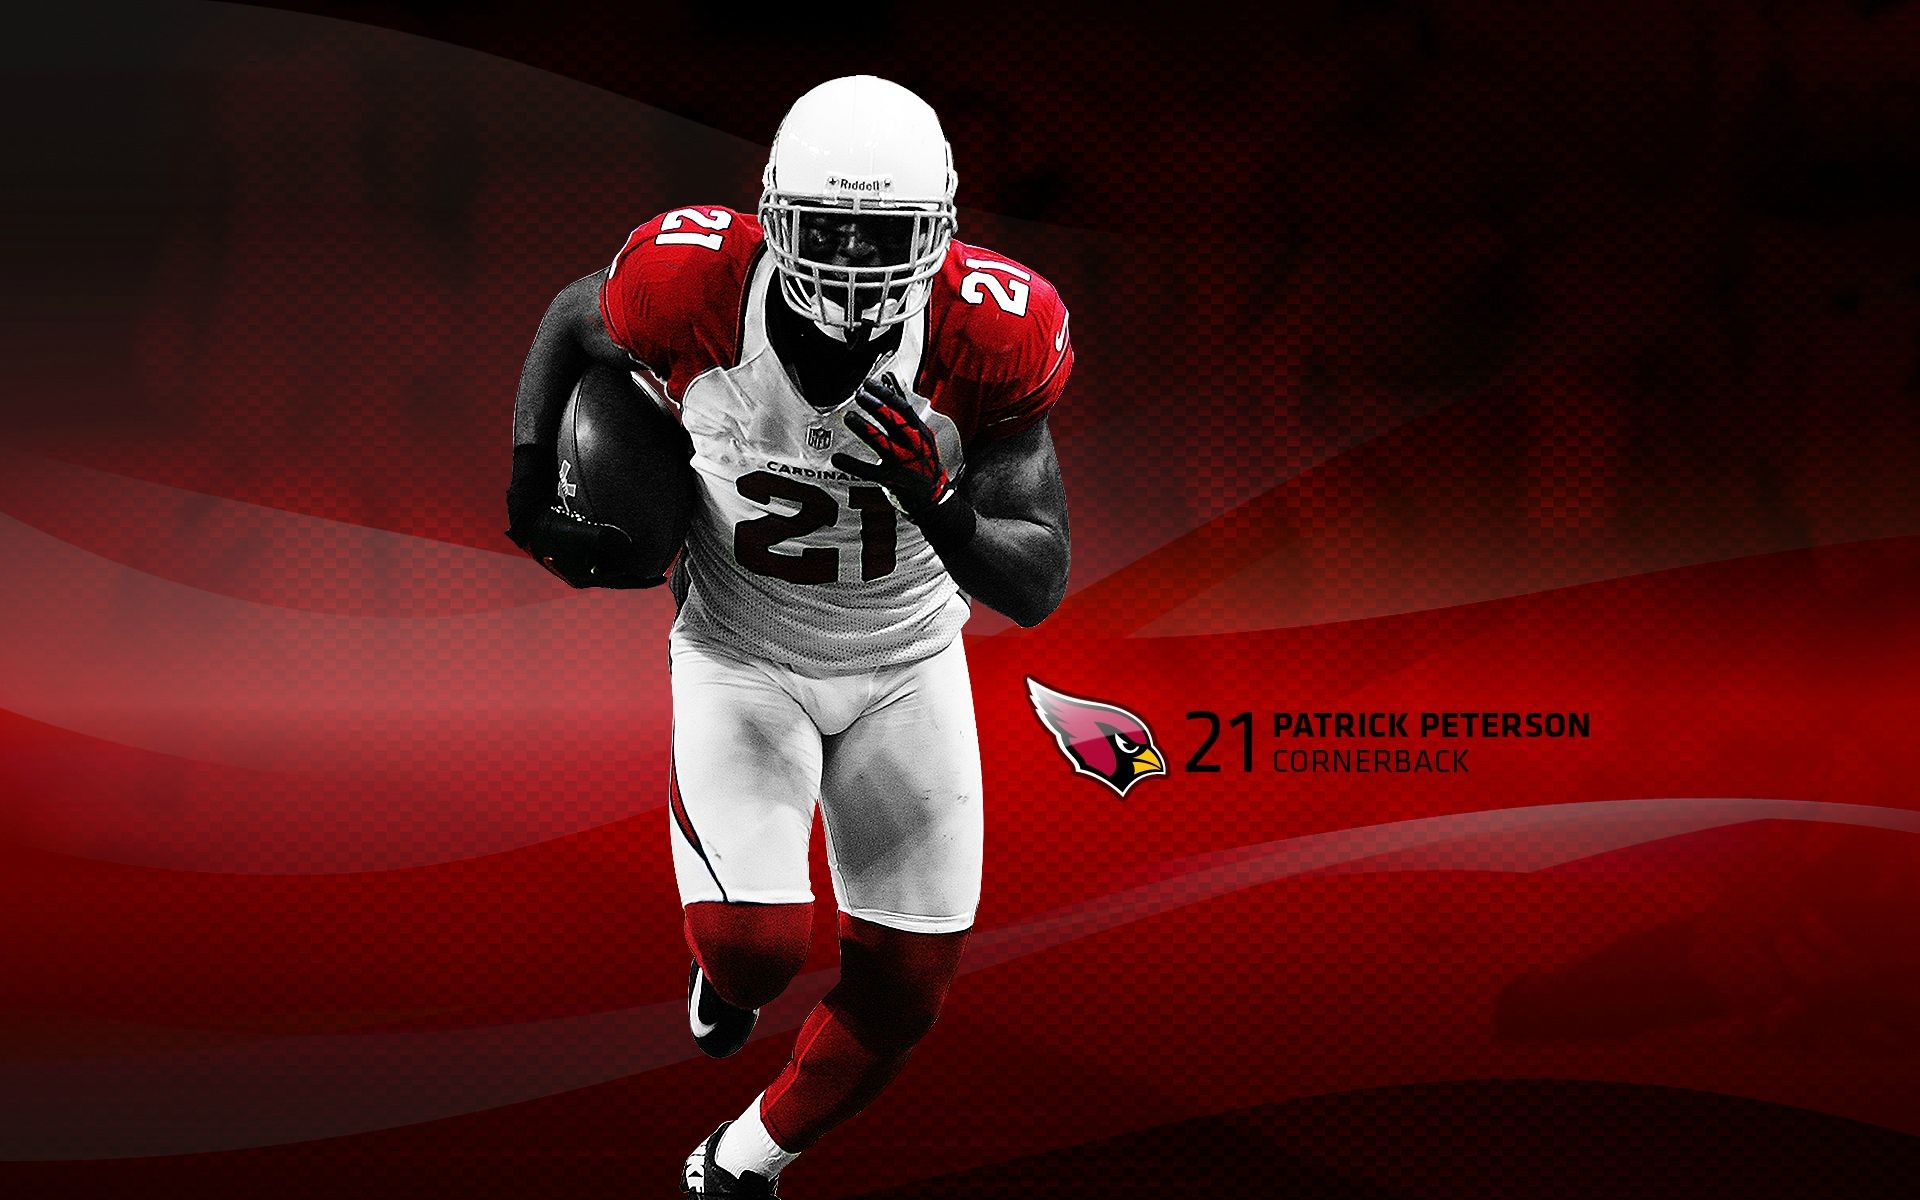 1920x1200 Nfl Wallpaper Images on